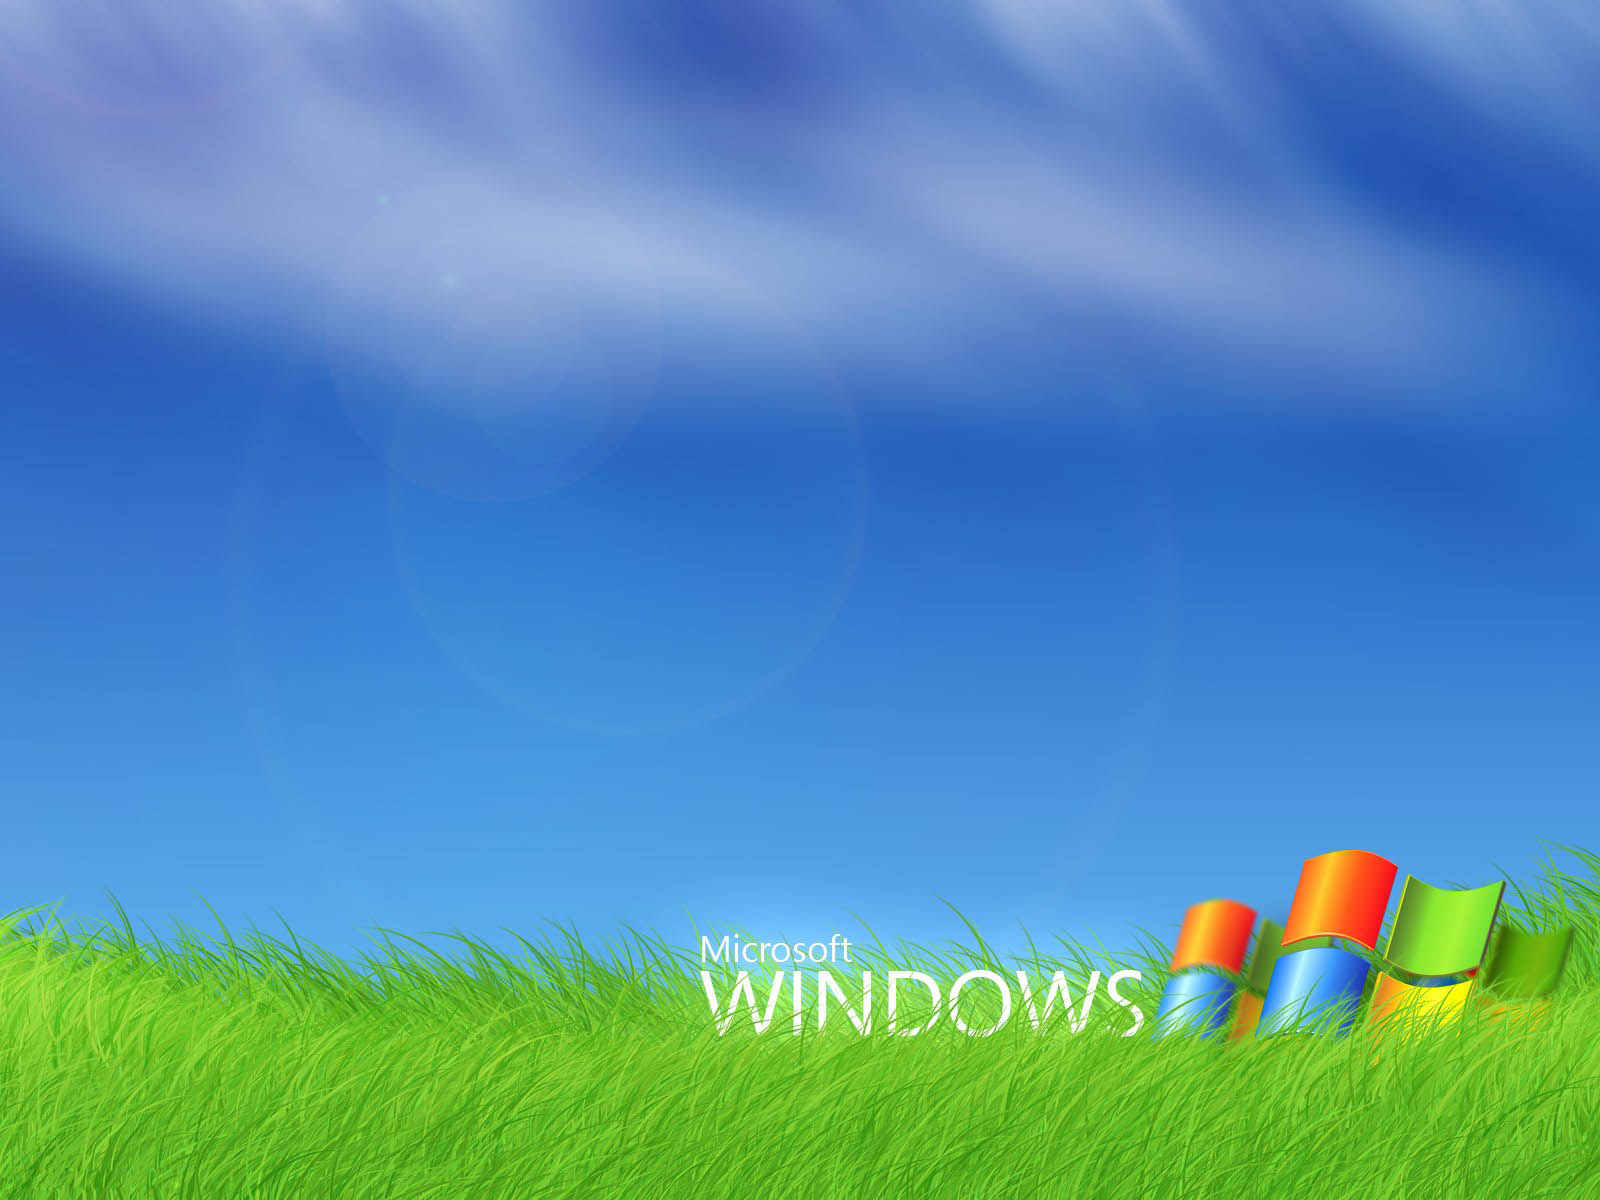 wallpapers windows xp wallpapers